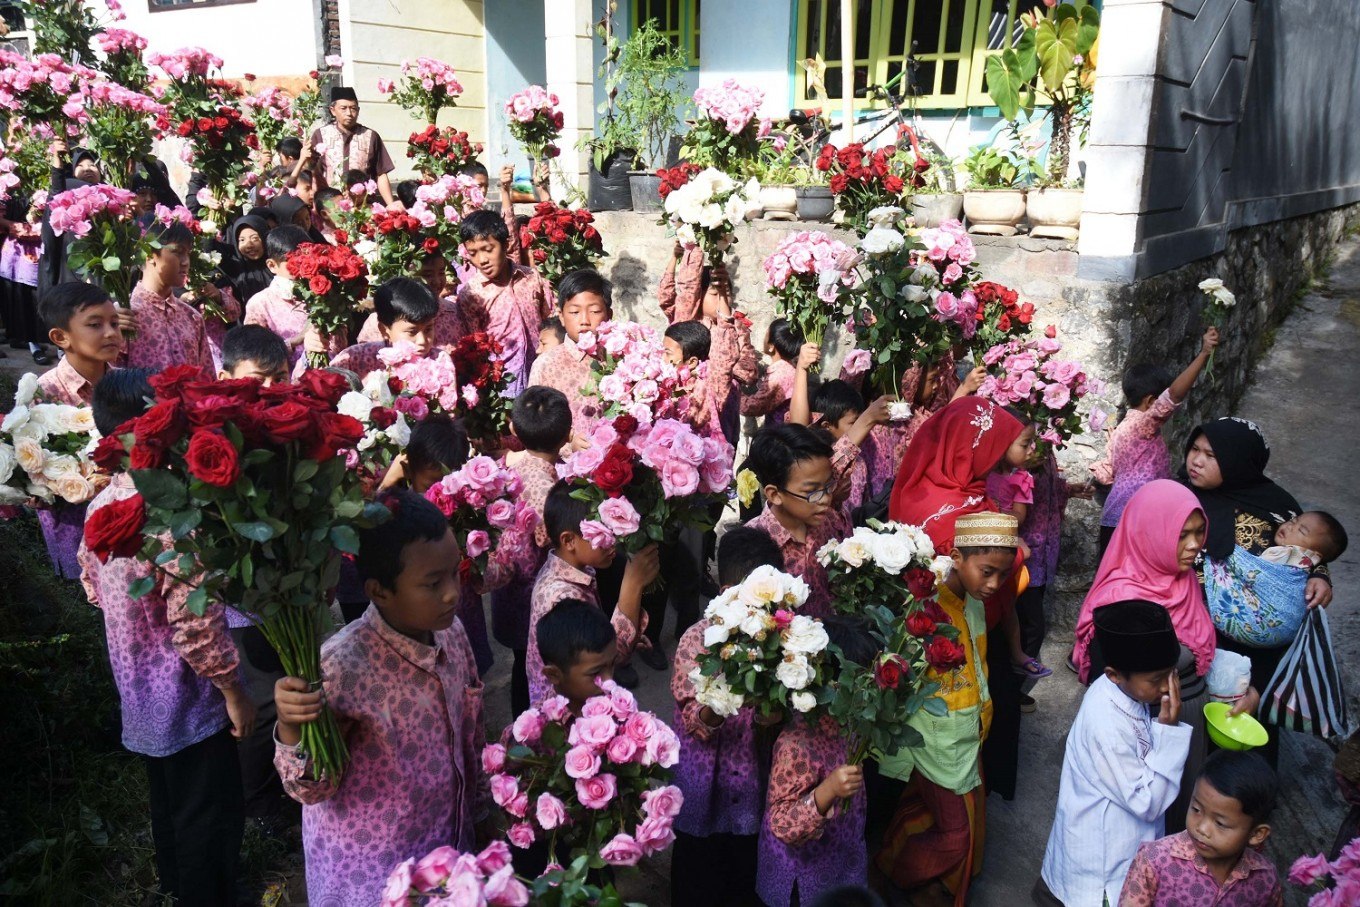 Friends with roses in hand accompany children to be circumcised in Blumbang Macari lake.